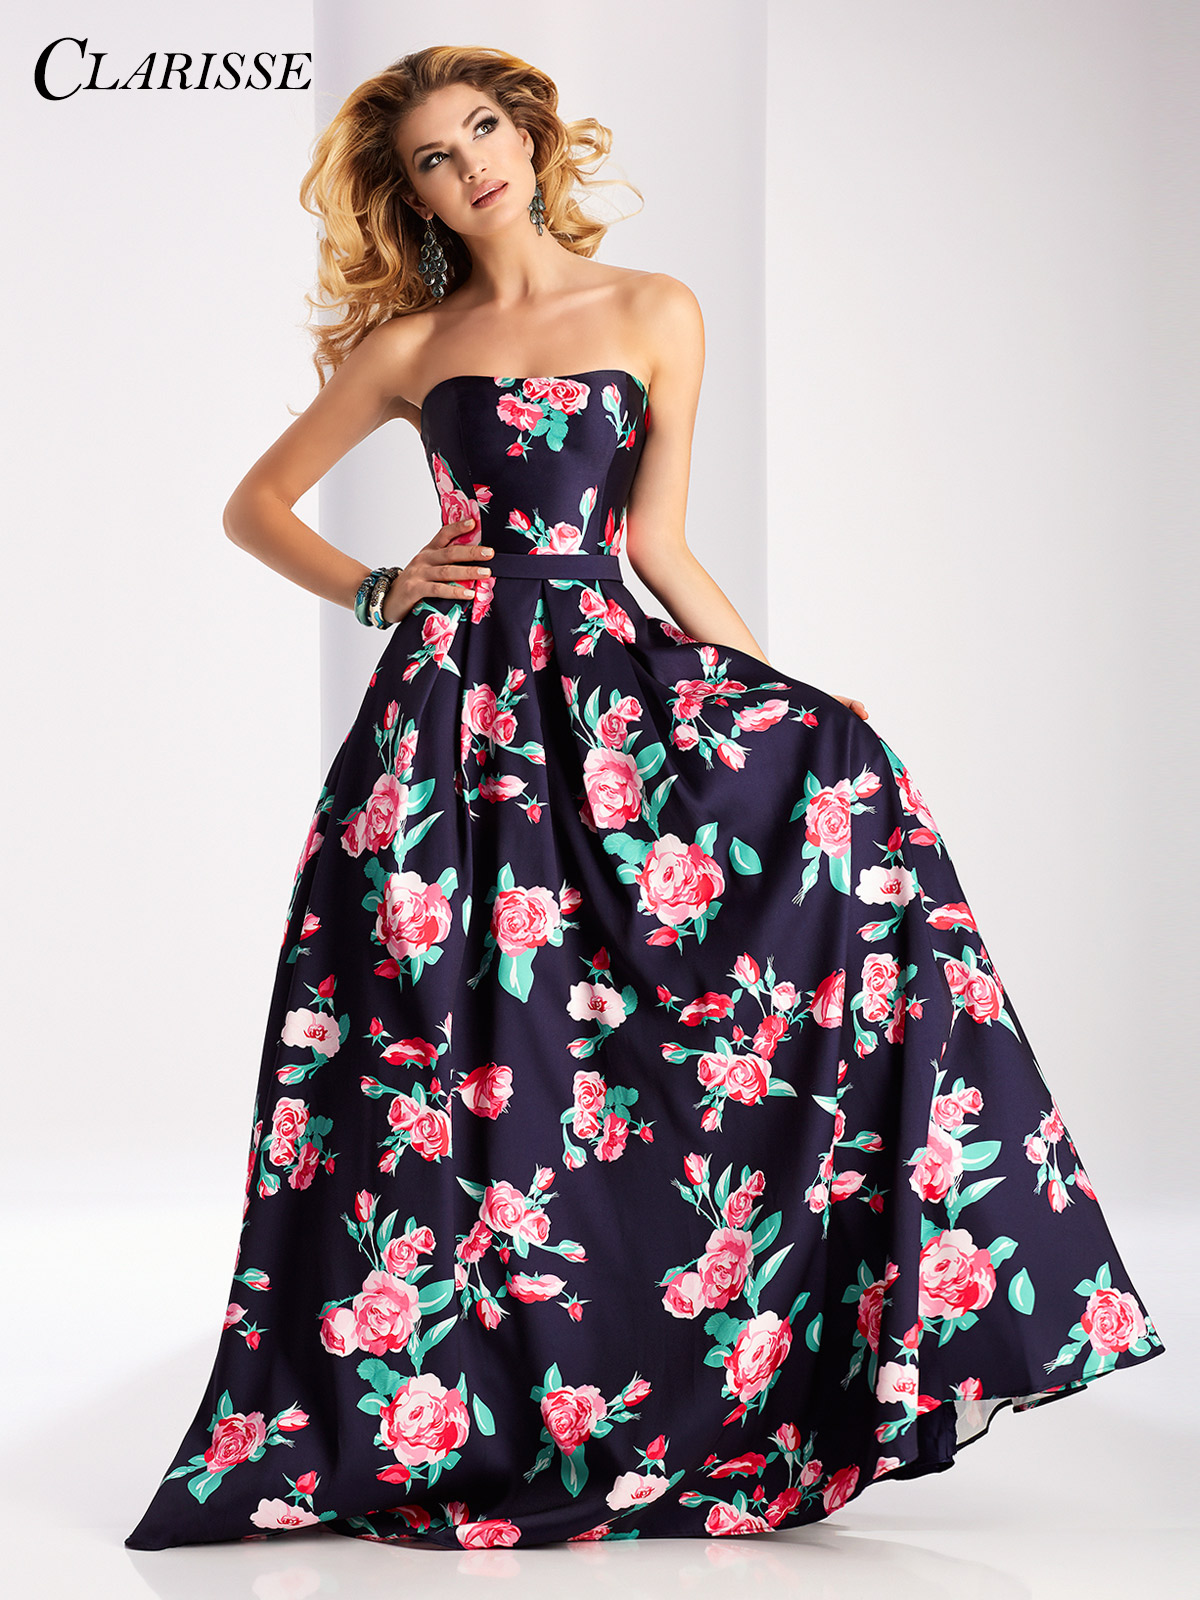 Clarisse Prom Dress 3029 | Promgirl.net